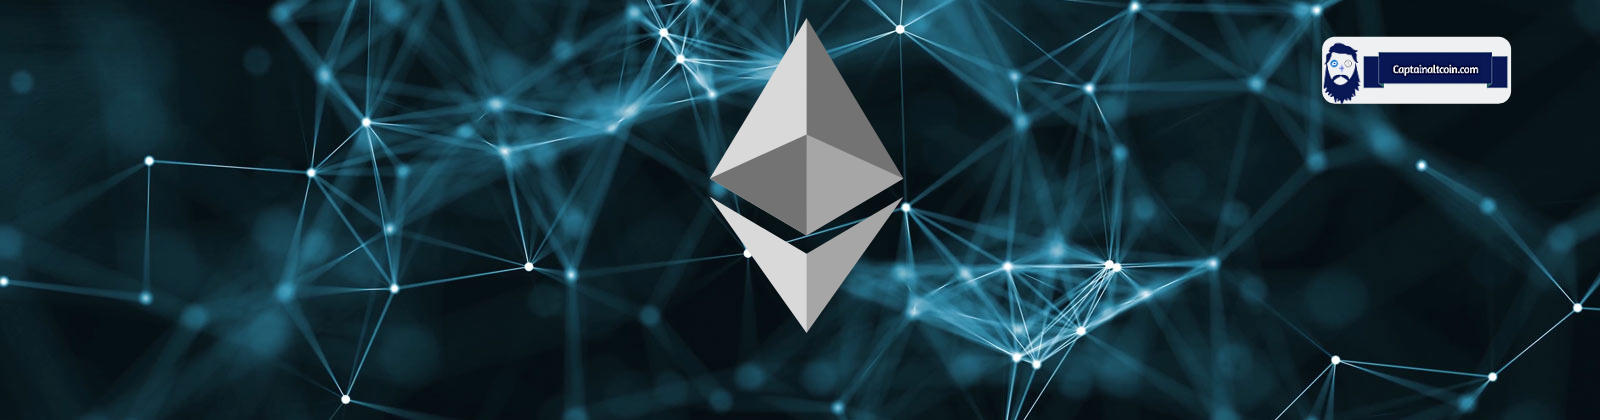 Ethereum (ETH) Price Prediction 2019 - Back to Two or Four Digits